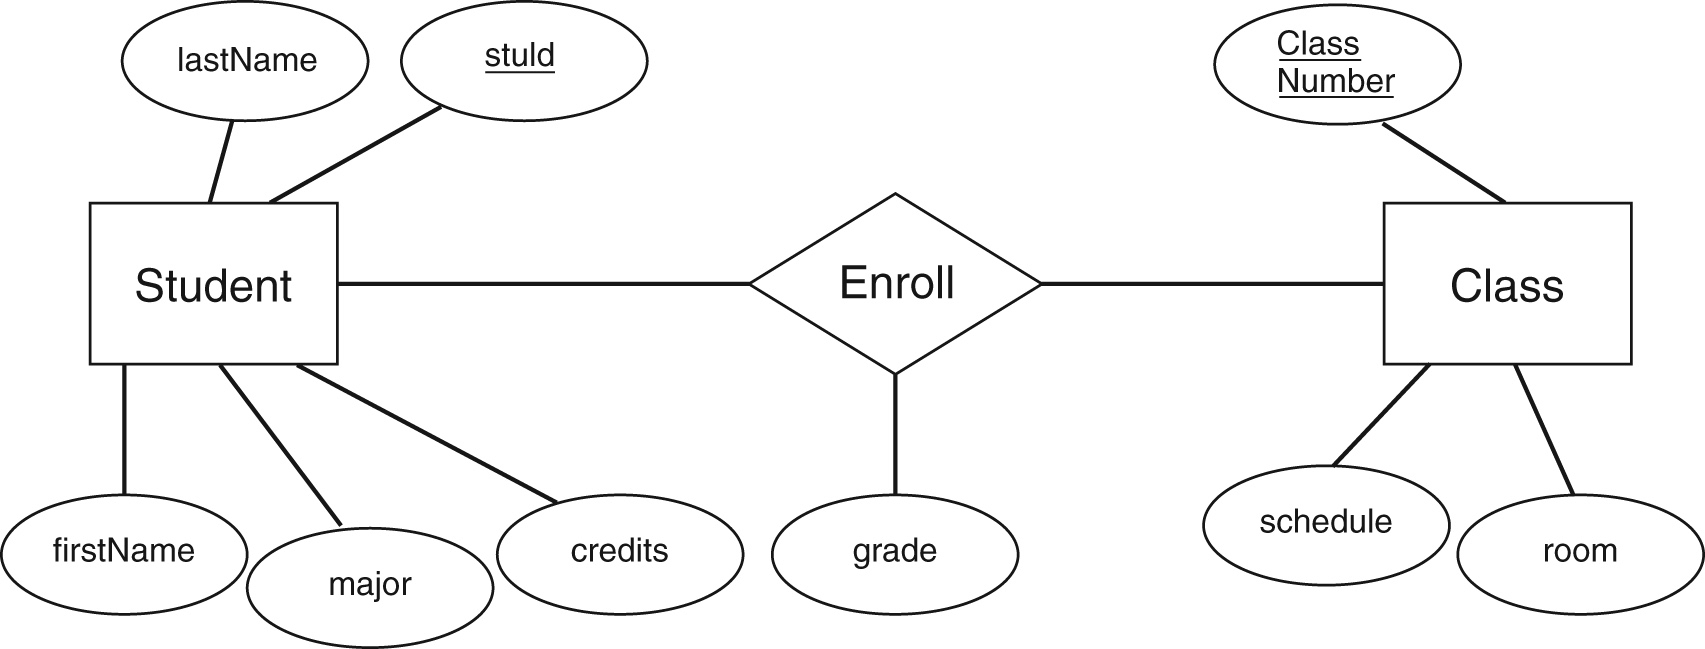 Er Diagram Dbms Examples - 9.ulrich-Temme.de • pertaining to Er Diagram In Dbms With Examples Ppt